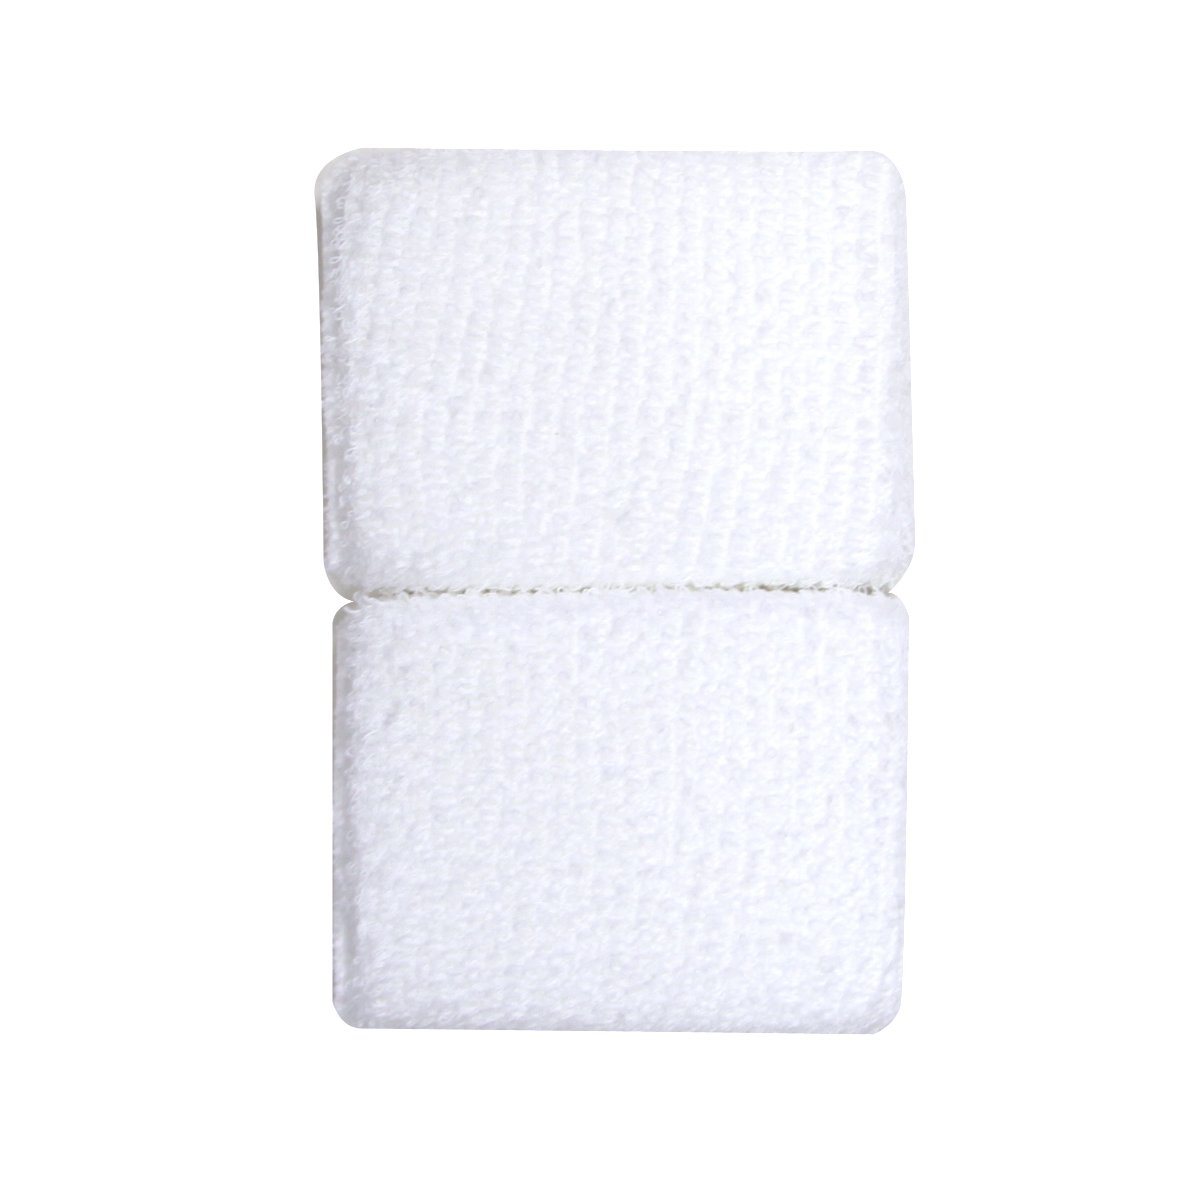 Trimaco 10102 SuperTuff Sponge, 2 Pack Staining Pad, White